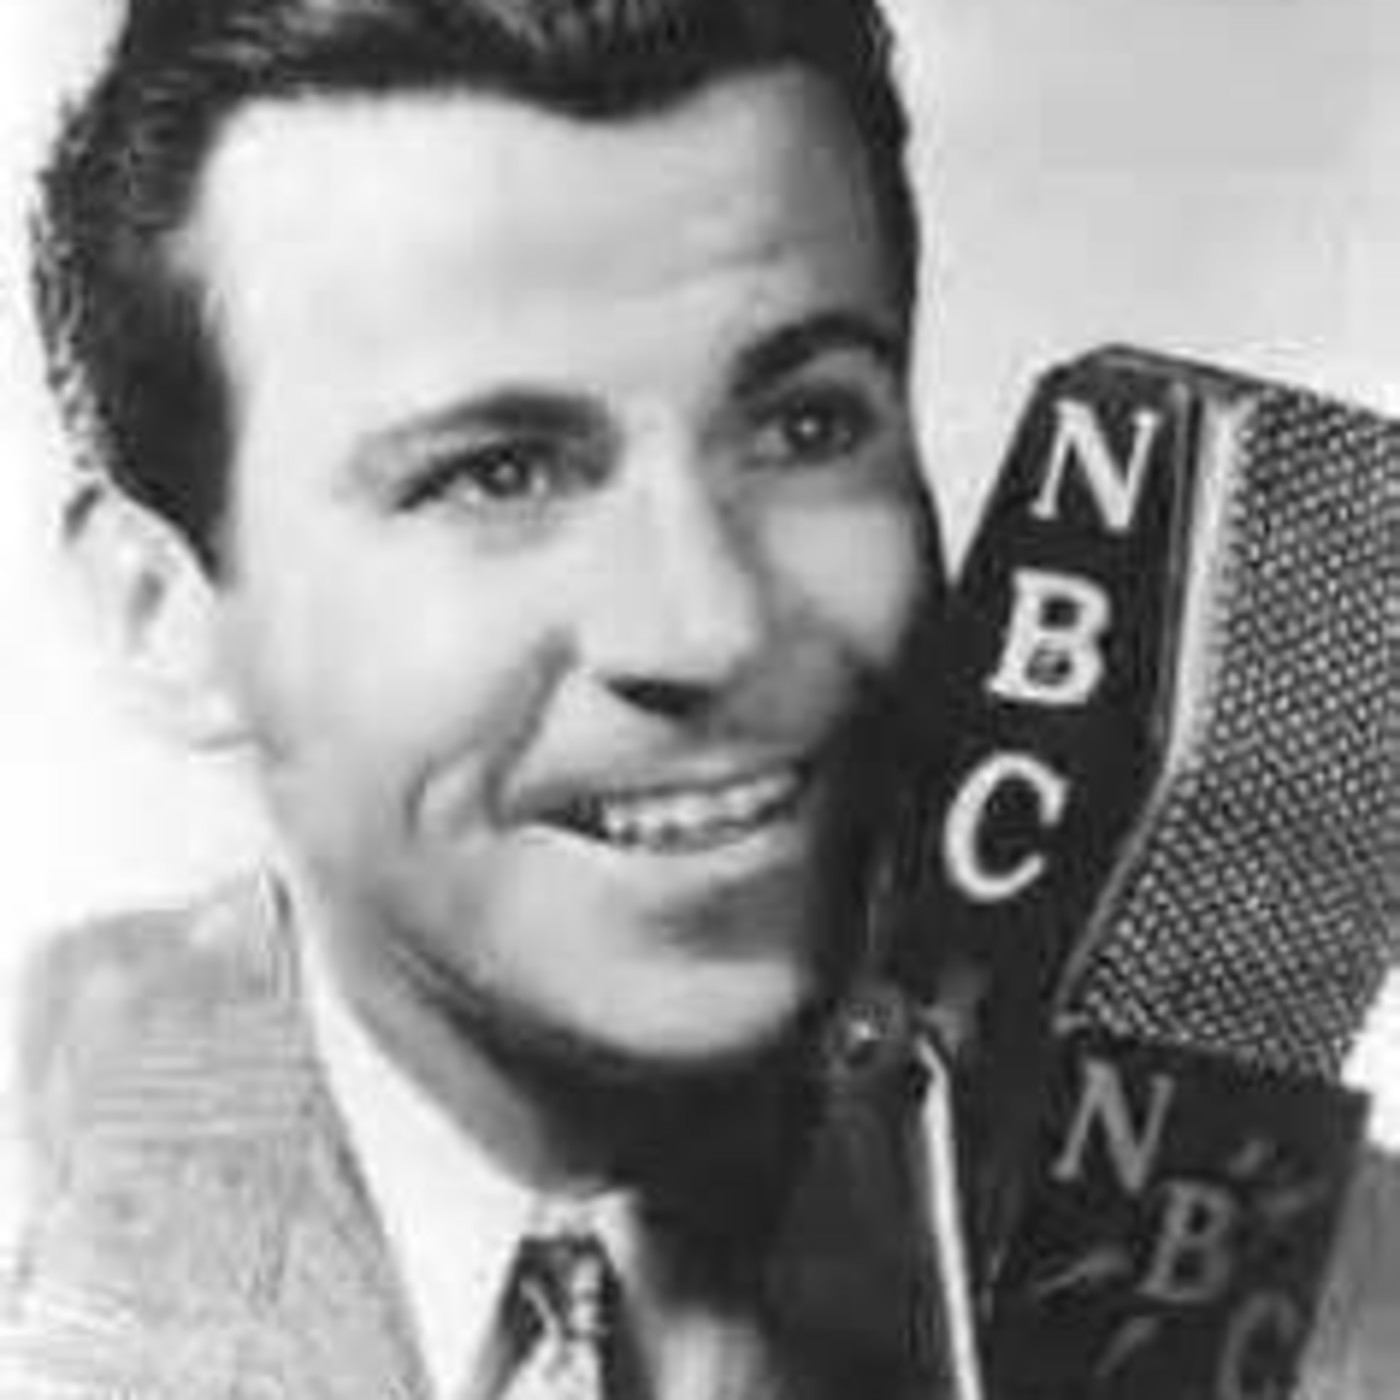 A Day In The Life Of Dennis Day - 481002-TheRunaway - 54